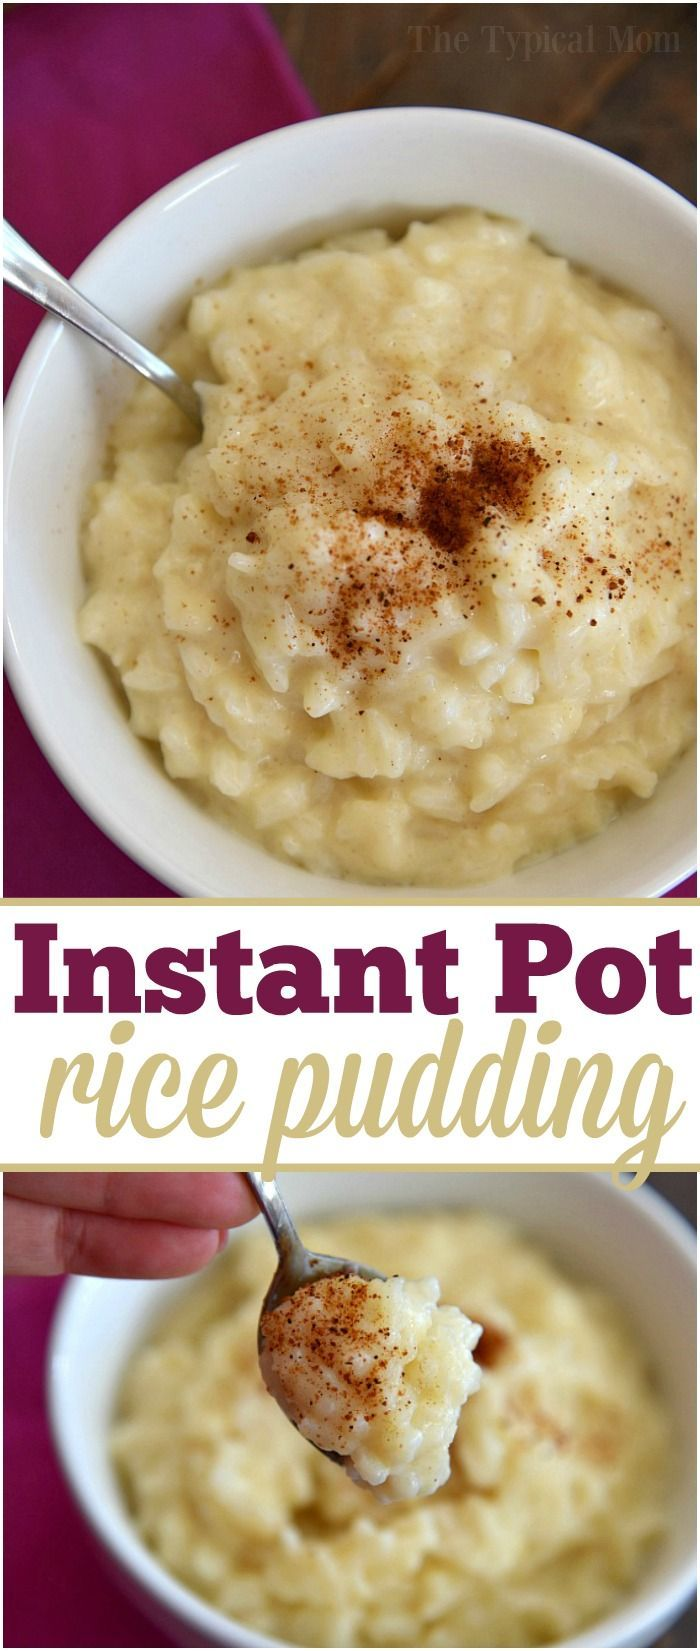 The most amazing Instant Pot rice pudding recipe that takes just 10 minutes and is the best dessert ever! Just 4 ingredients and great either warm or cold. via /thetypicalmom/